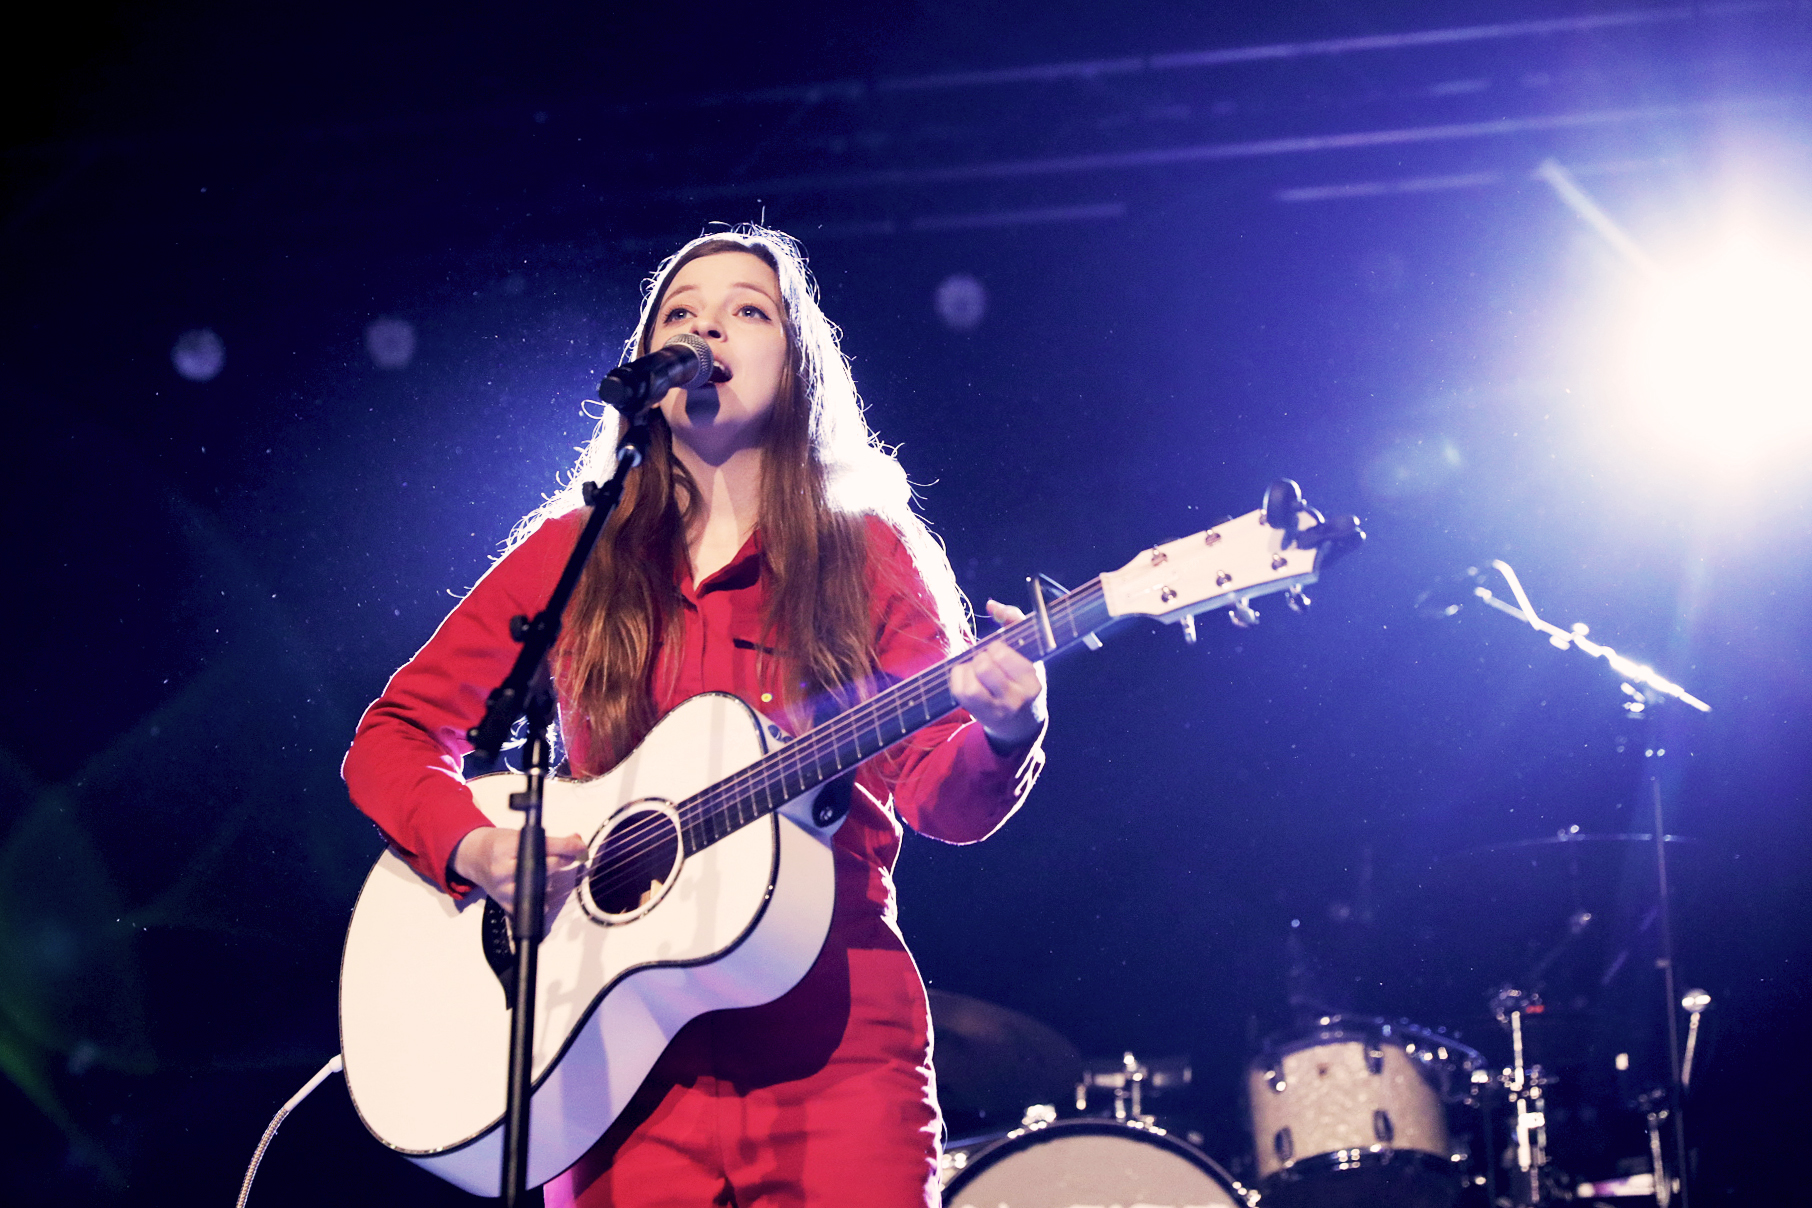 British musician and professional smiler, Jade Bird. Photo: @Lmsorenson